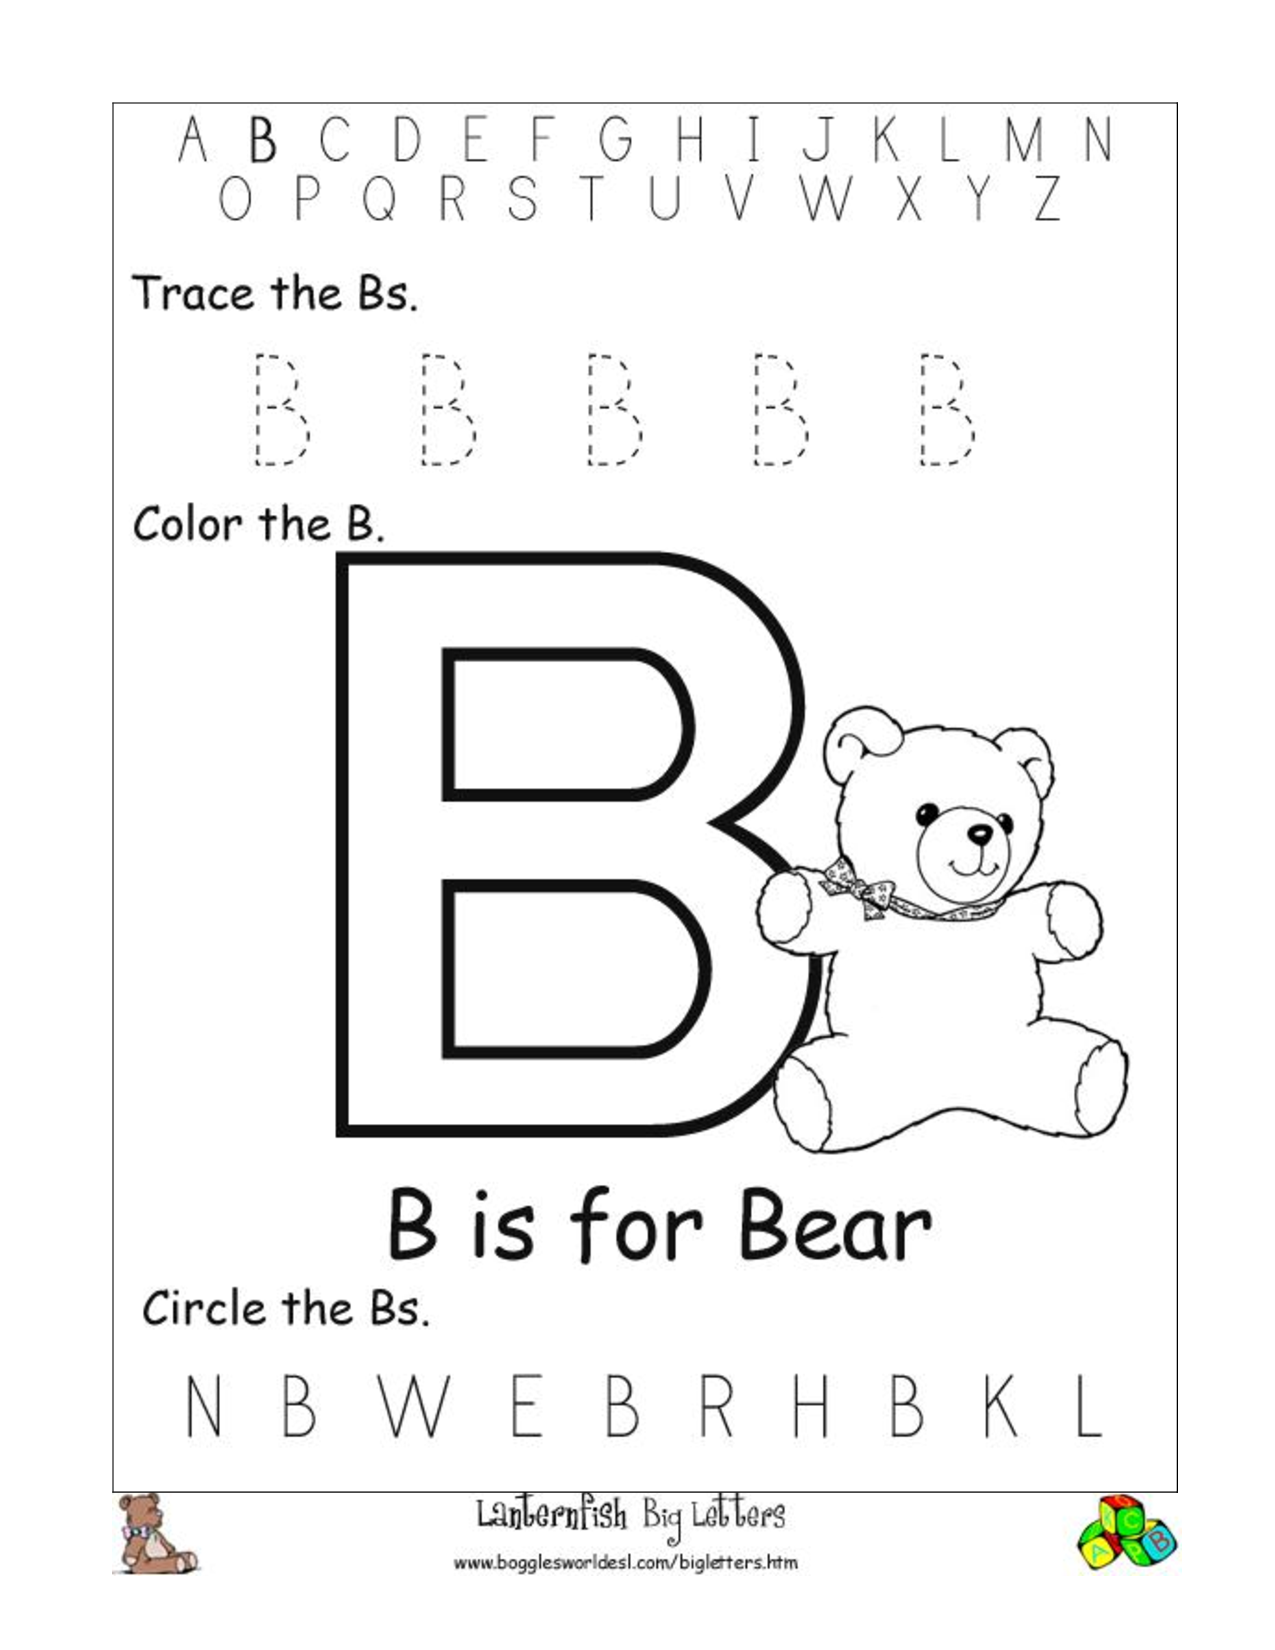 17 Best images about Letter B on Pinterest | Letter b worksheets ...